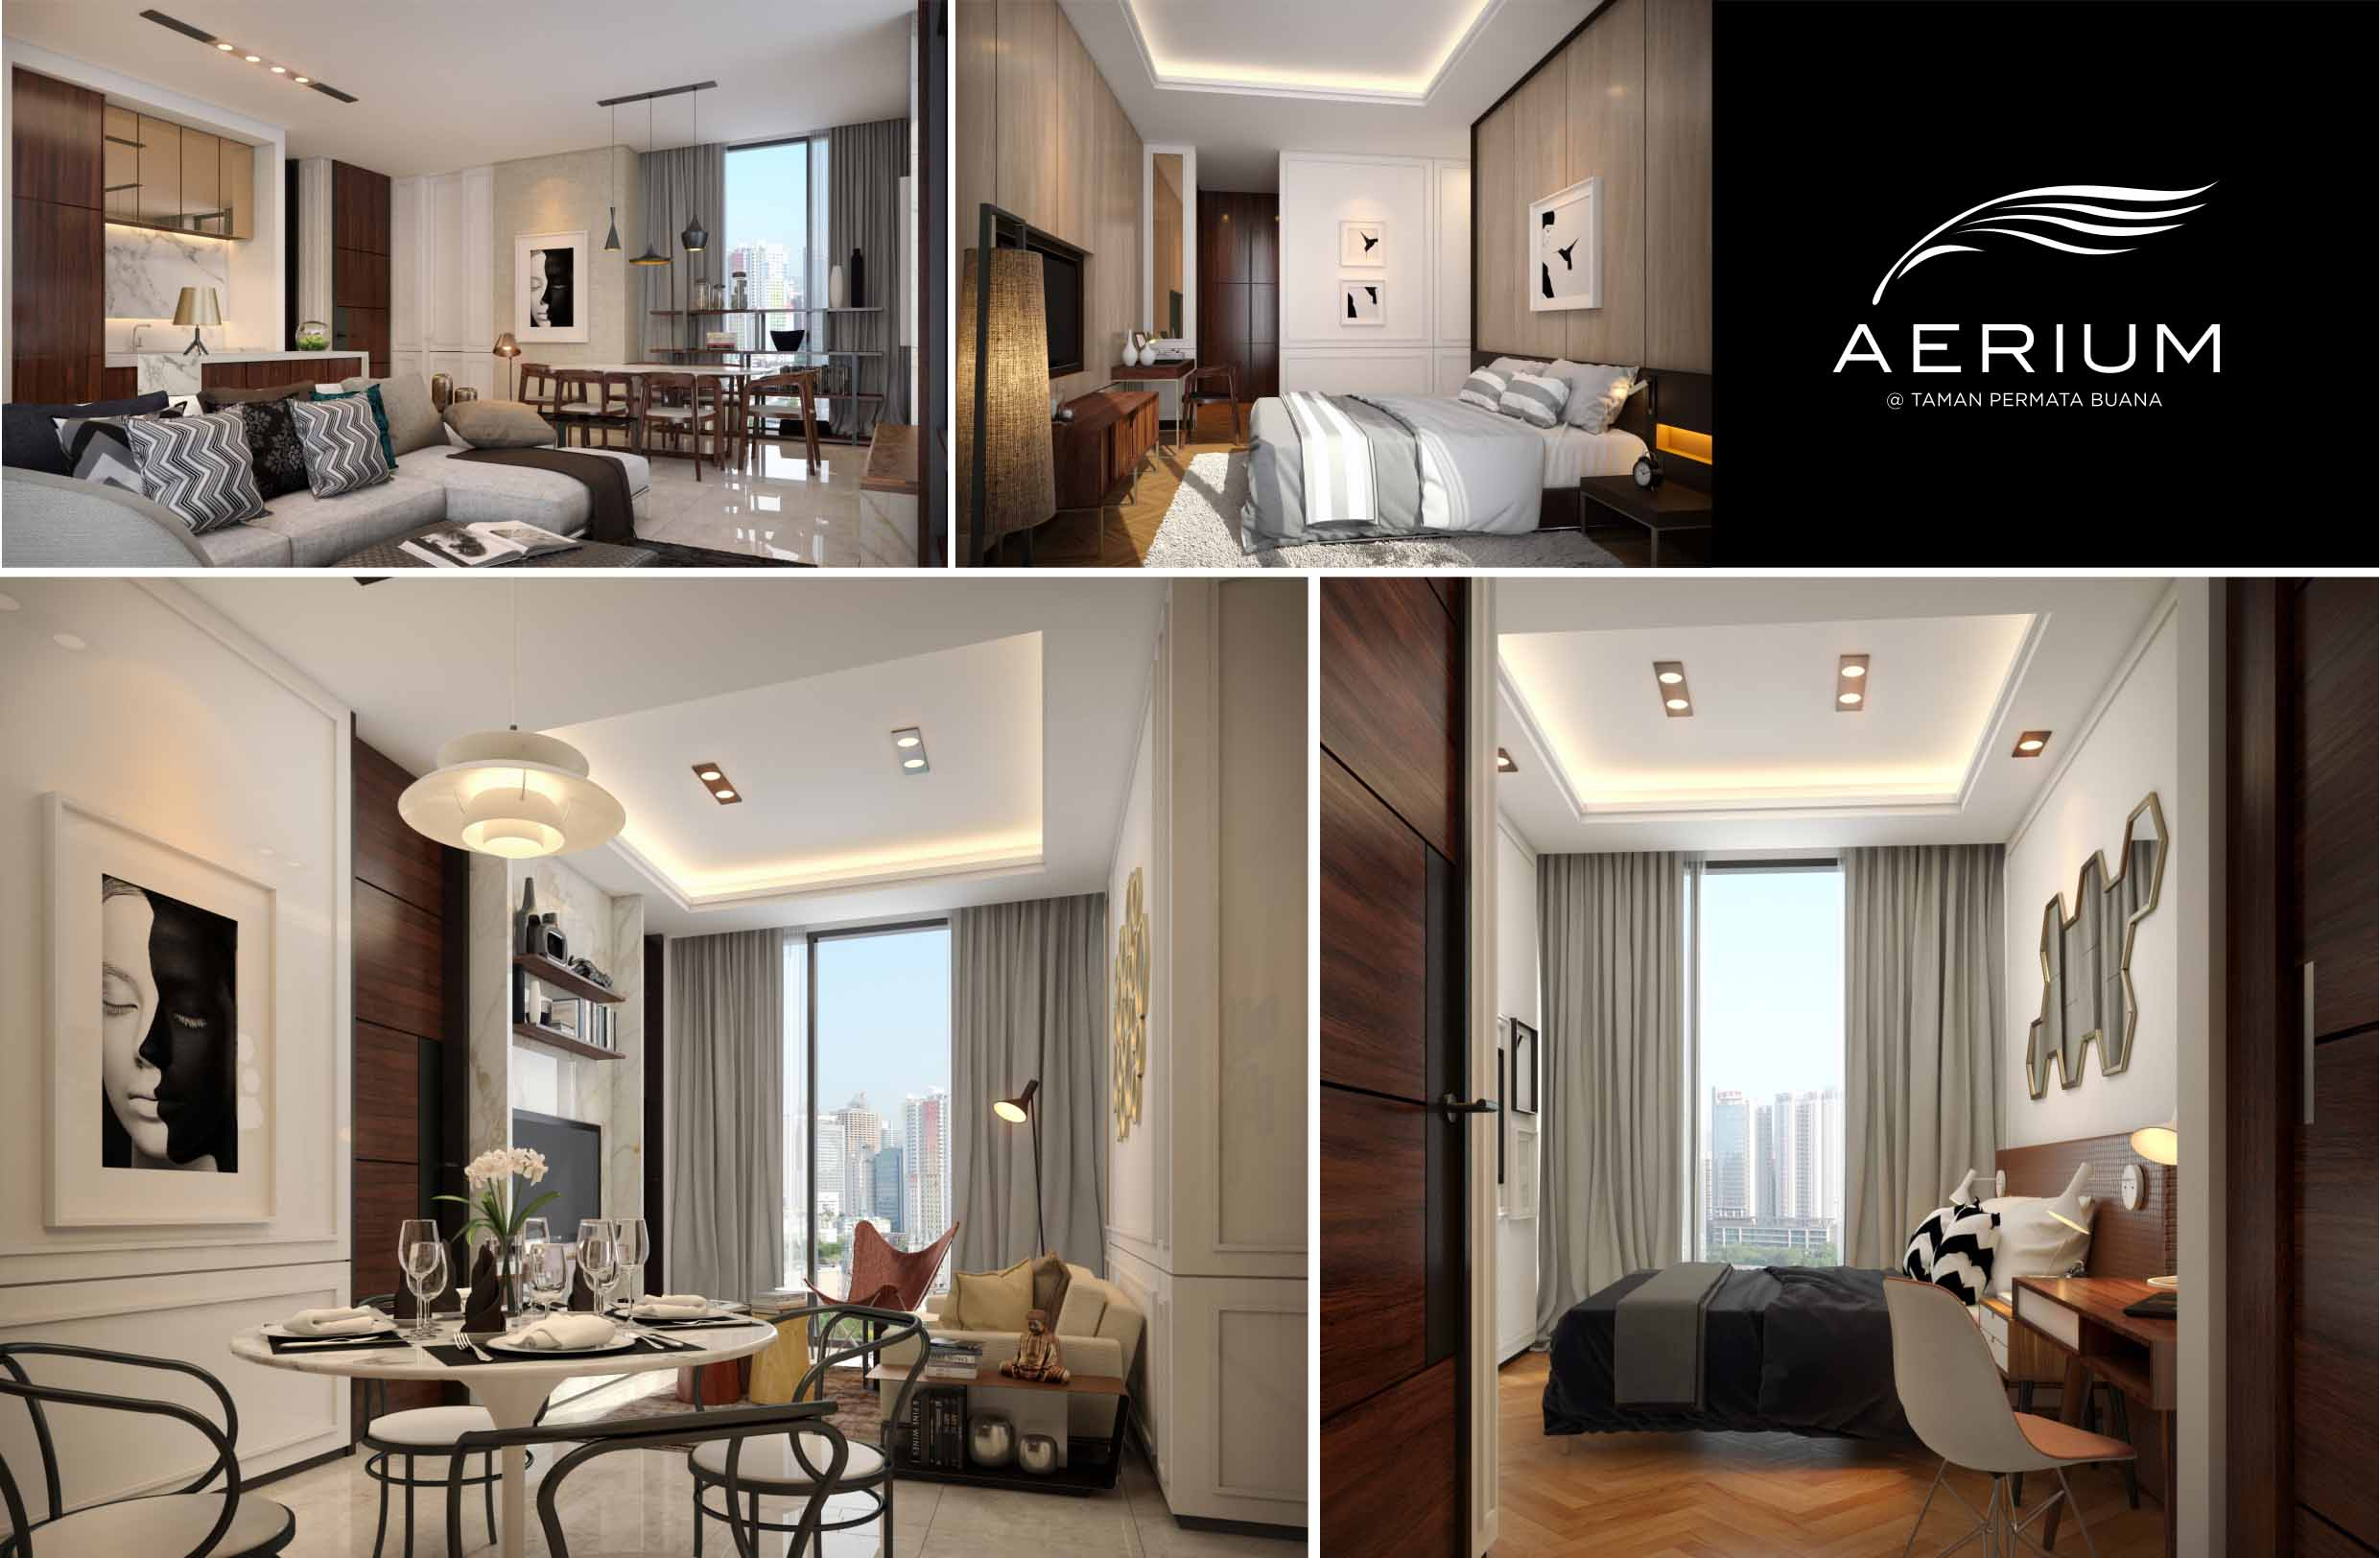 PTI Interiors Take On The Interior Design Of Aerium An Apartment Development At Taman Permata Buana West Jakarta Spearheaded By Sinarmas Land In